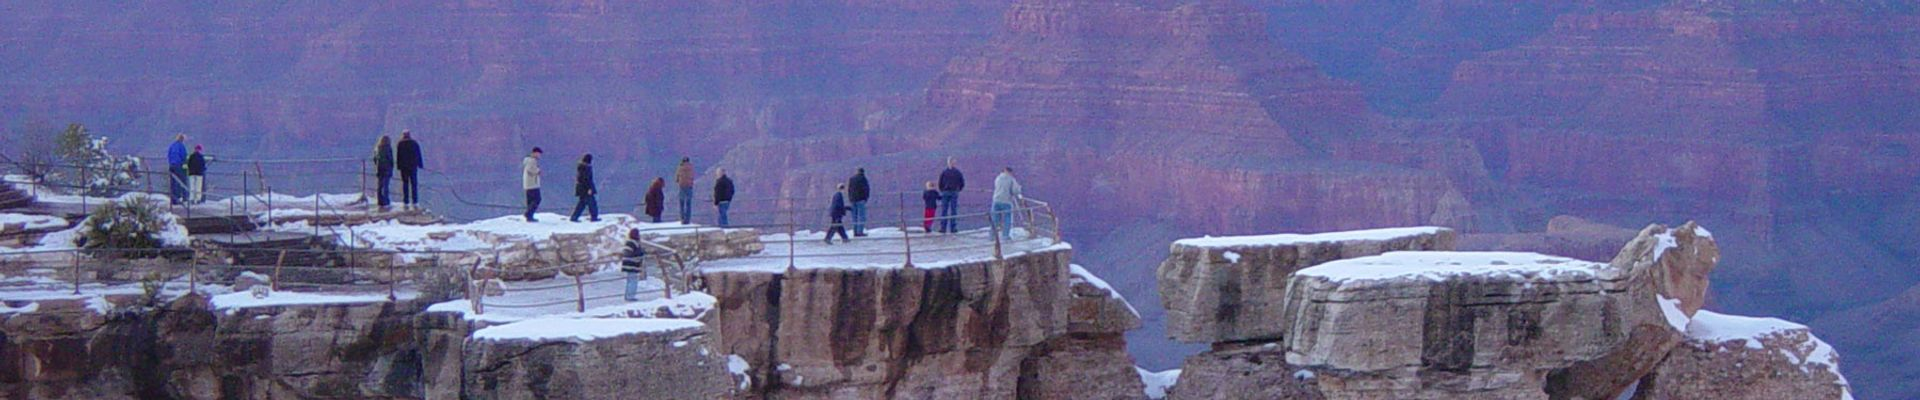 A man takes a photo of a sunset at the Grand Canyon.